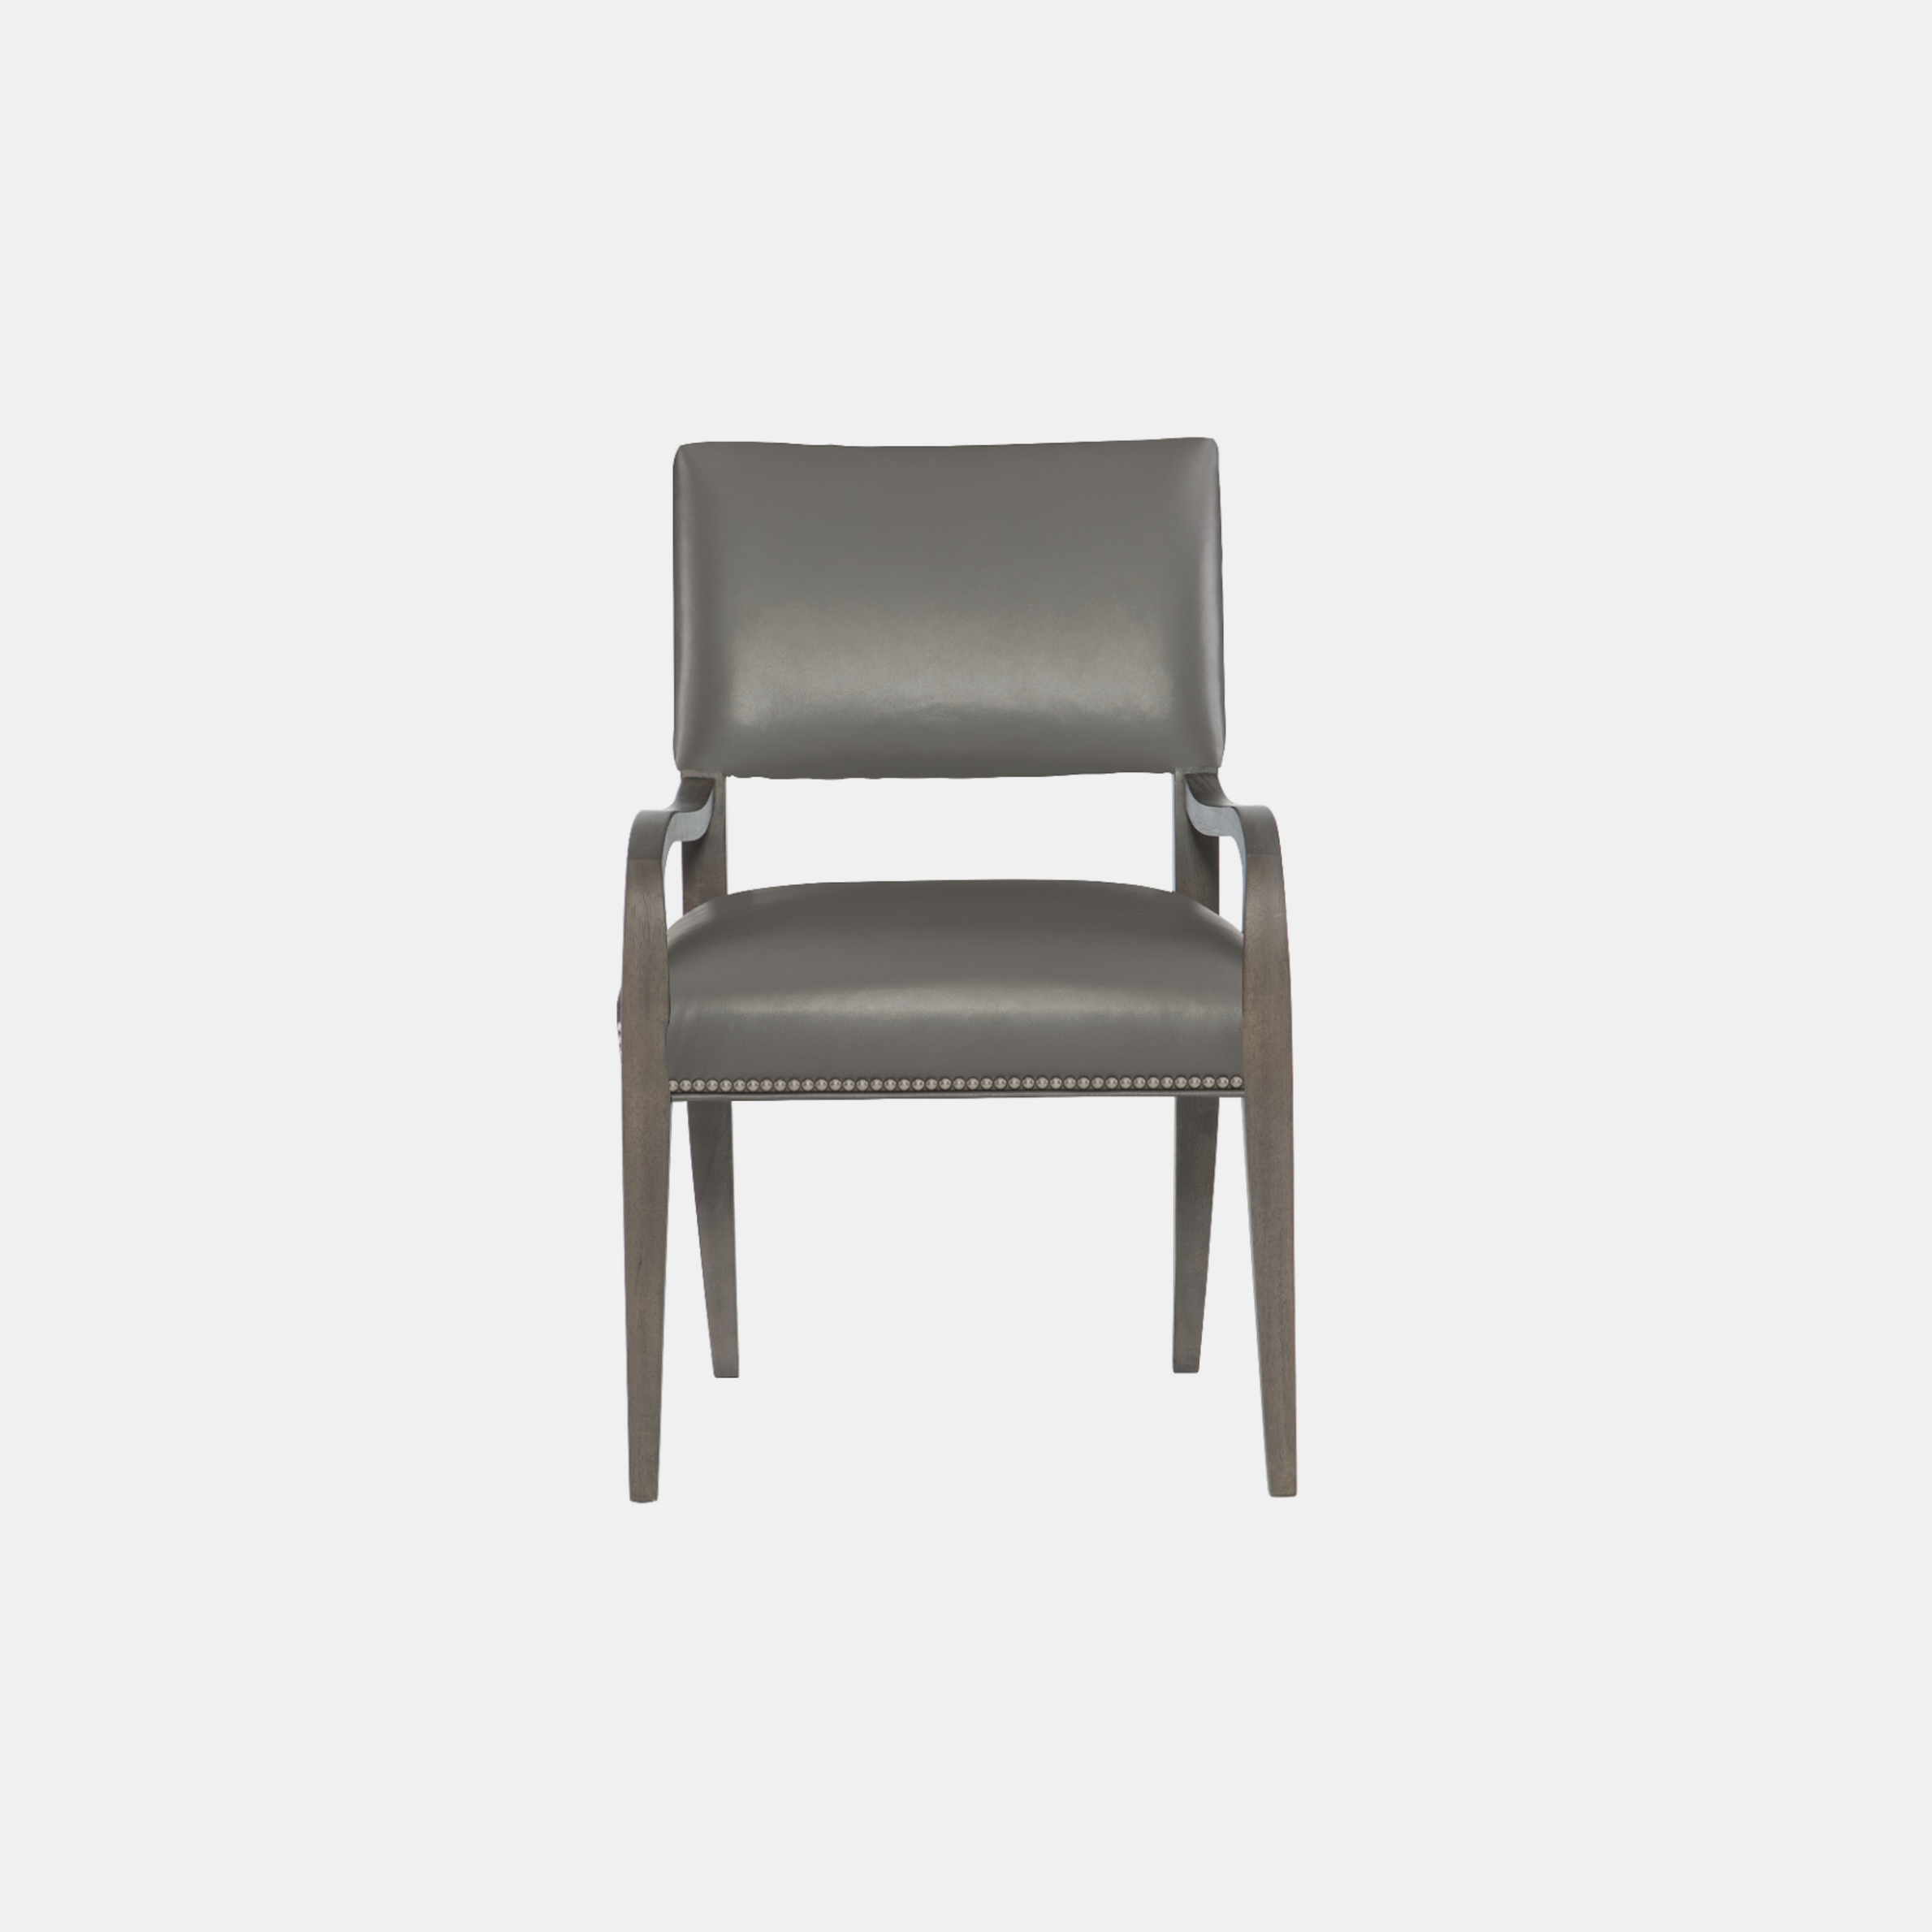 "Moore Leather Arm Chair  23-7/8""w x 24-5/8""d x 35-3/4""h Available in fabric, leather, or COM. Also available as side chair, counter stool, or bar stool. SKU3108BHT"